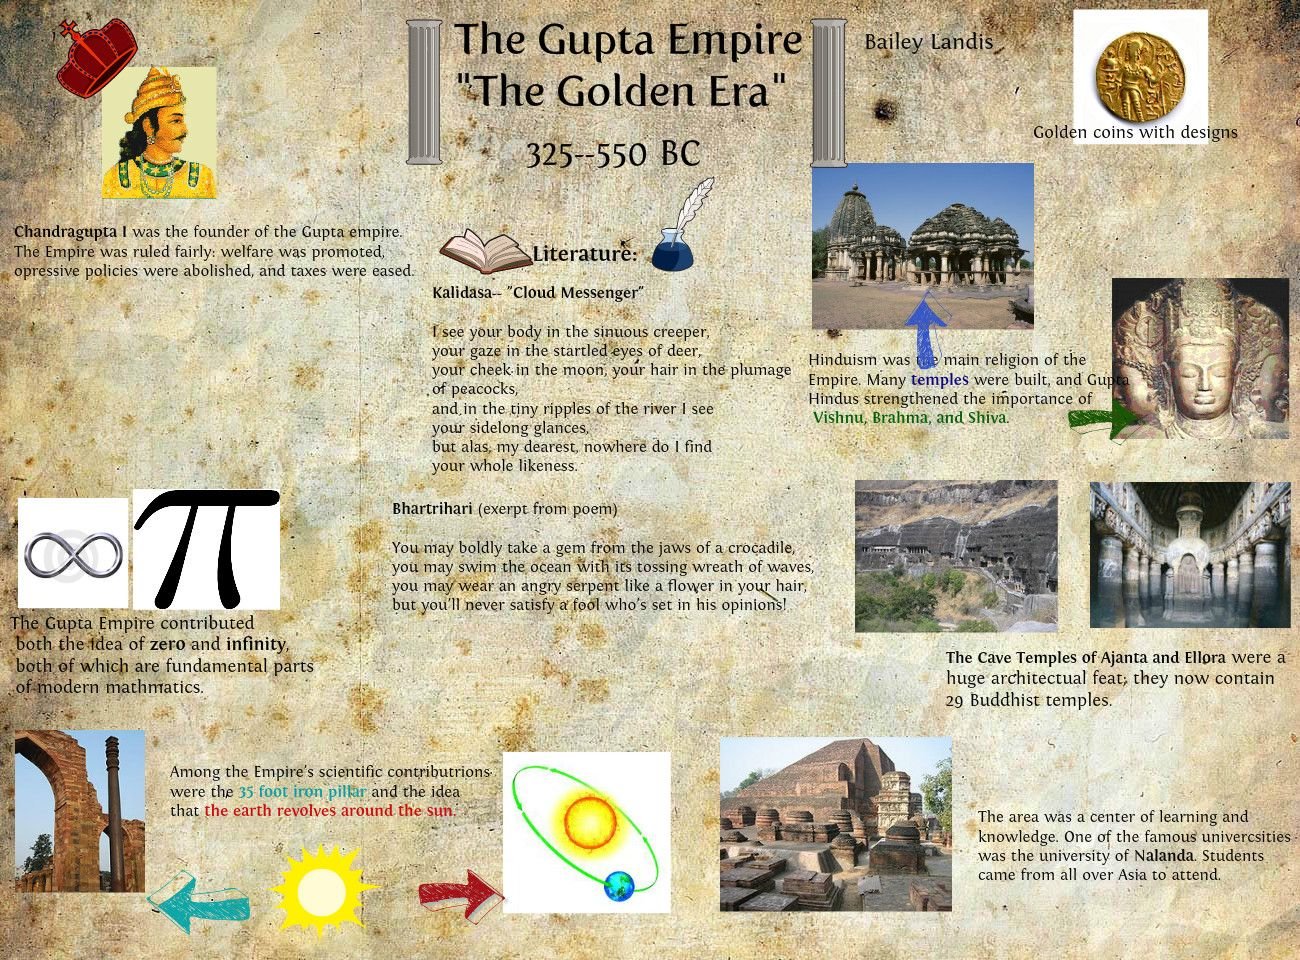 gupta empire achievements in astronomy - photo #28